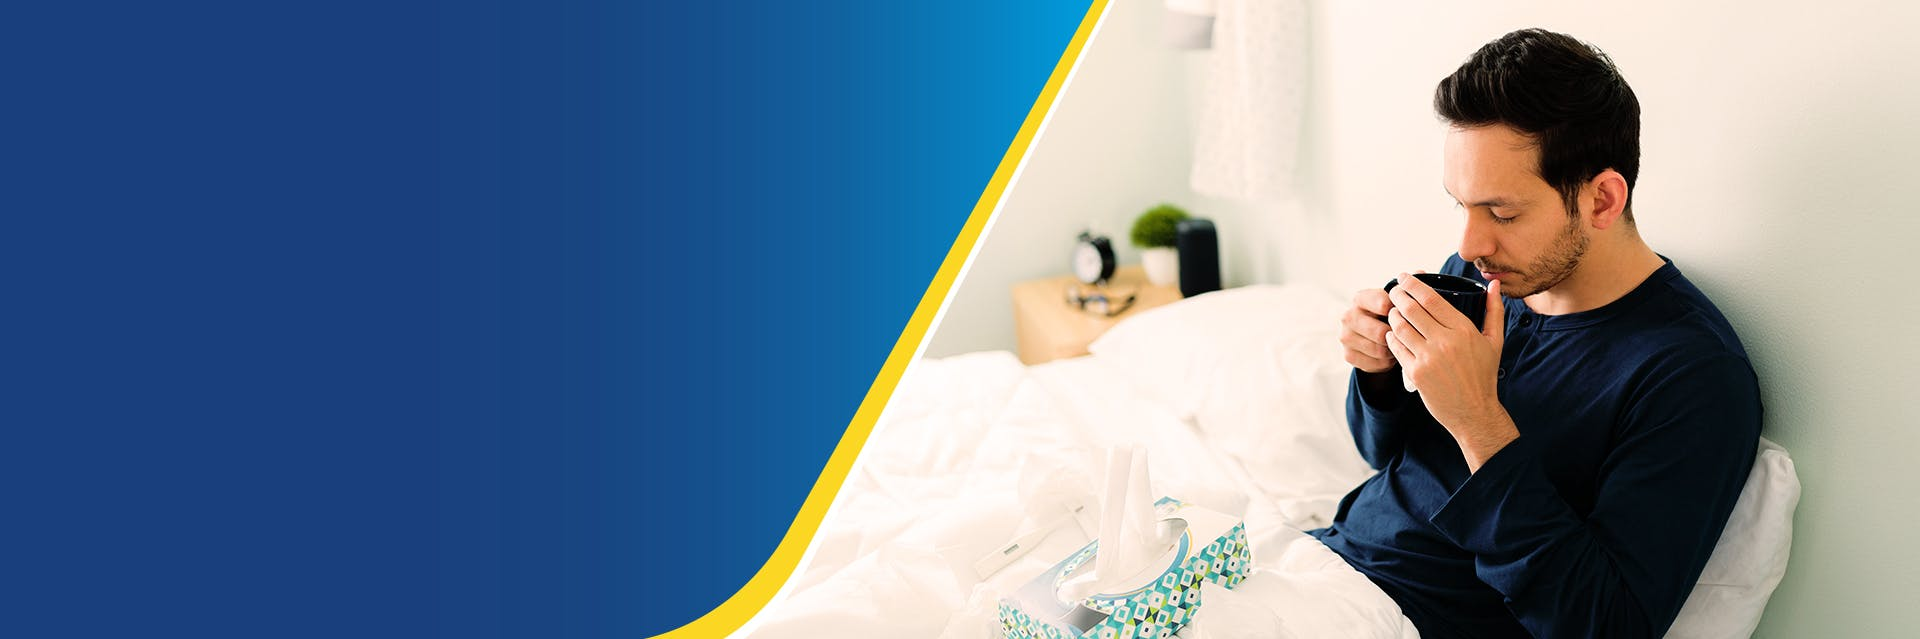 A man is sitting up in bed with a mug and a box of tissues